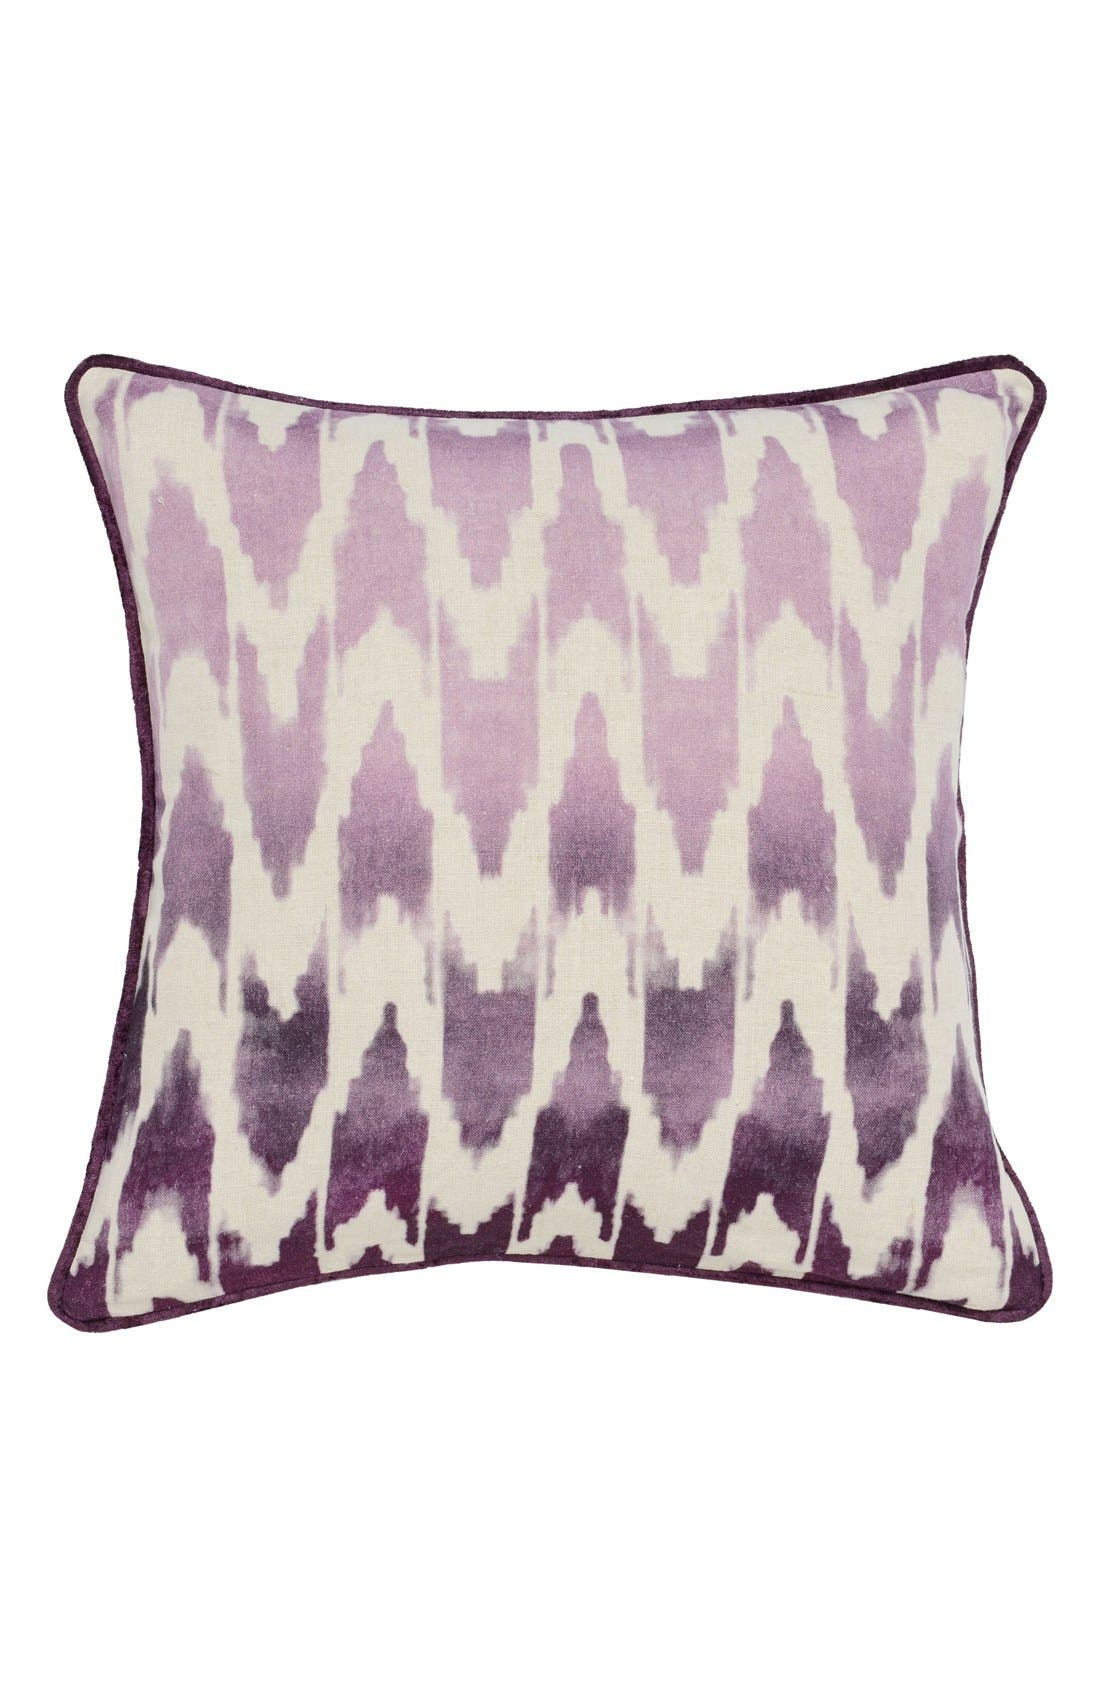 Villa Home Collection 'Neva' Decorative Pillow